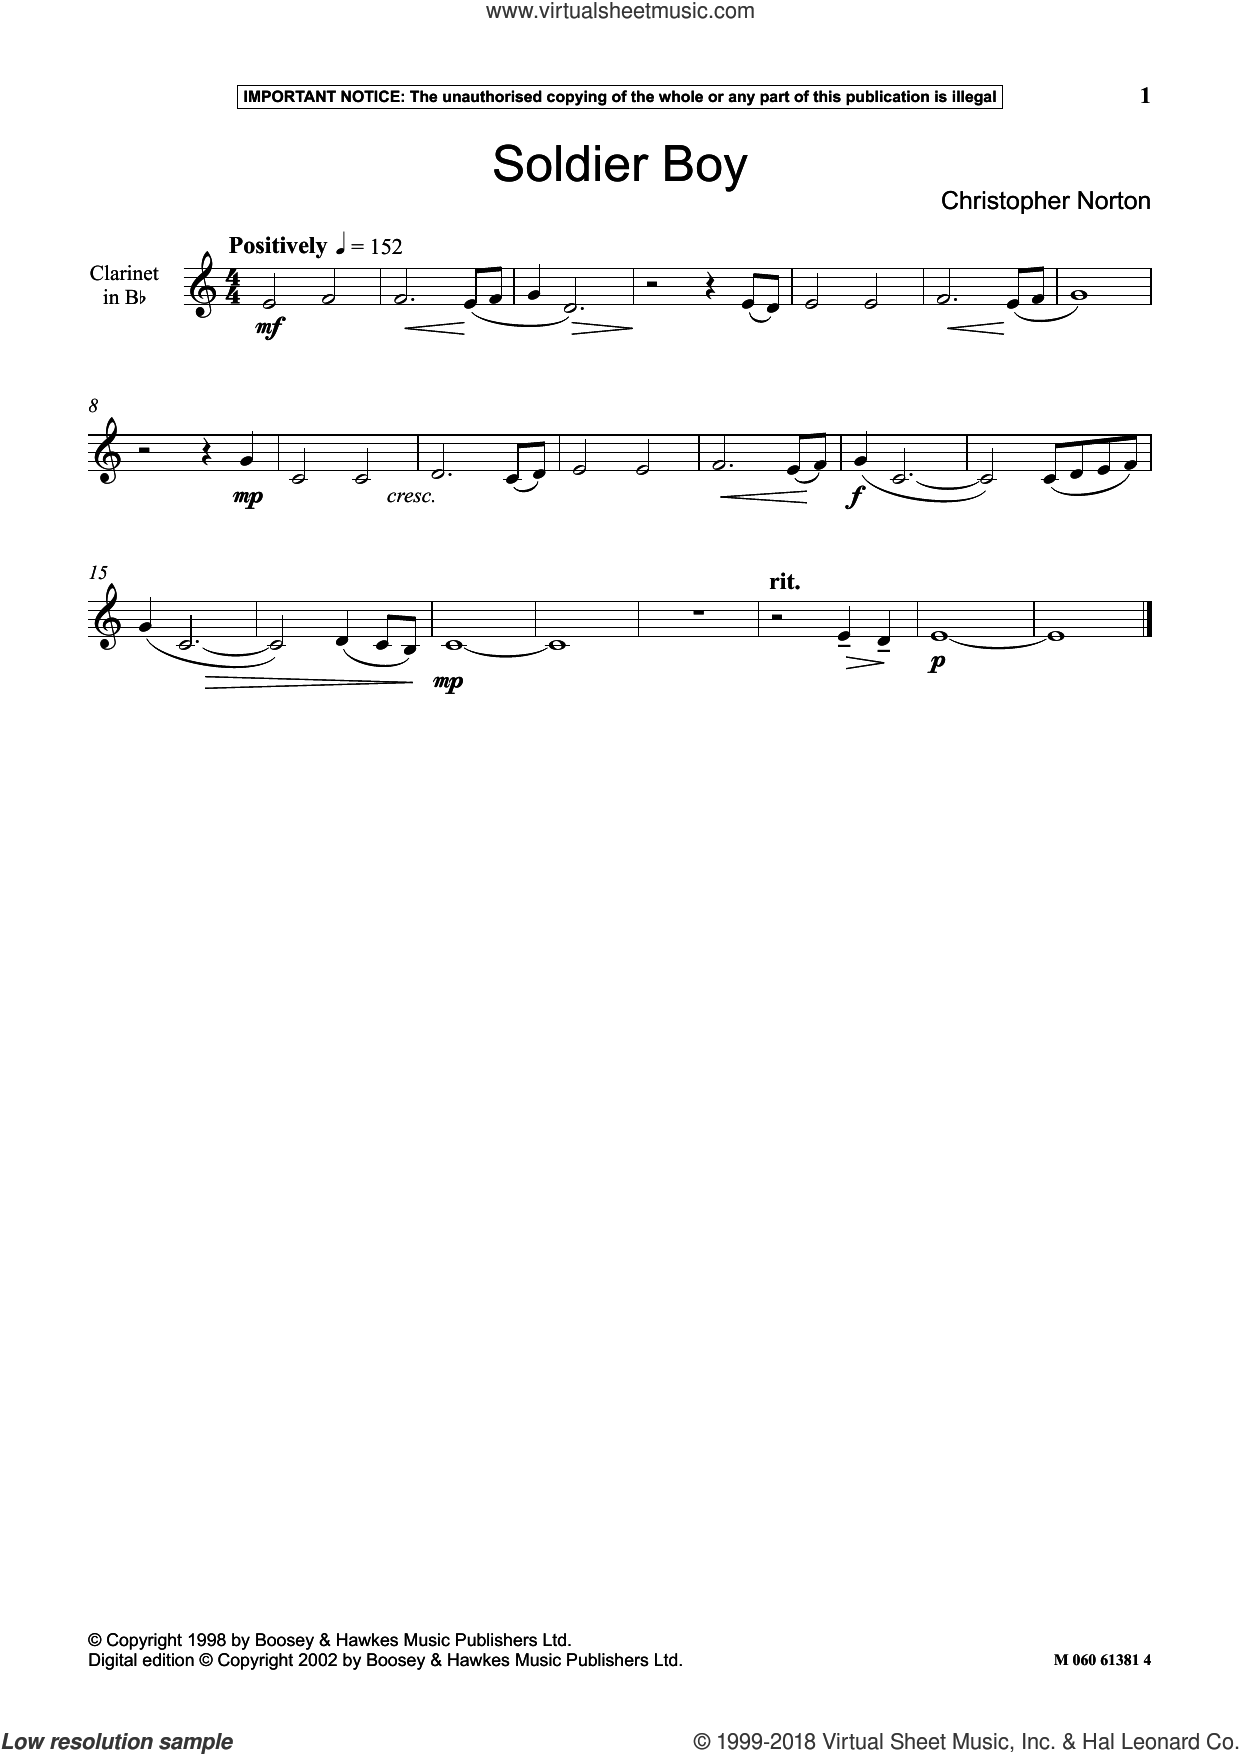 Soldier Boy sheet music for clarinet solo by Christopher Norton, classical score, intermediate skill level